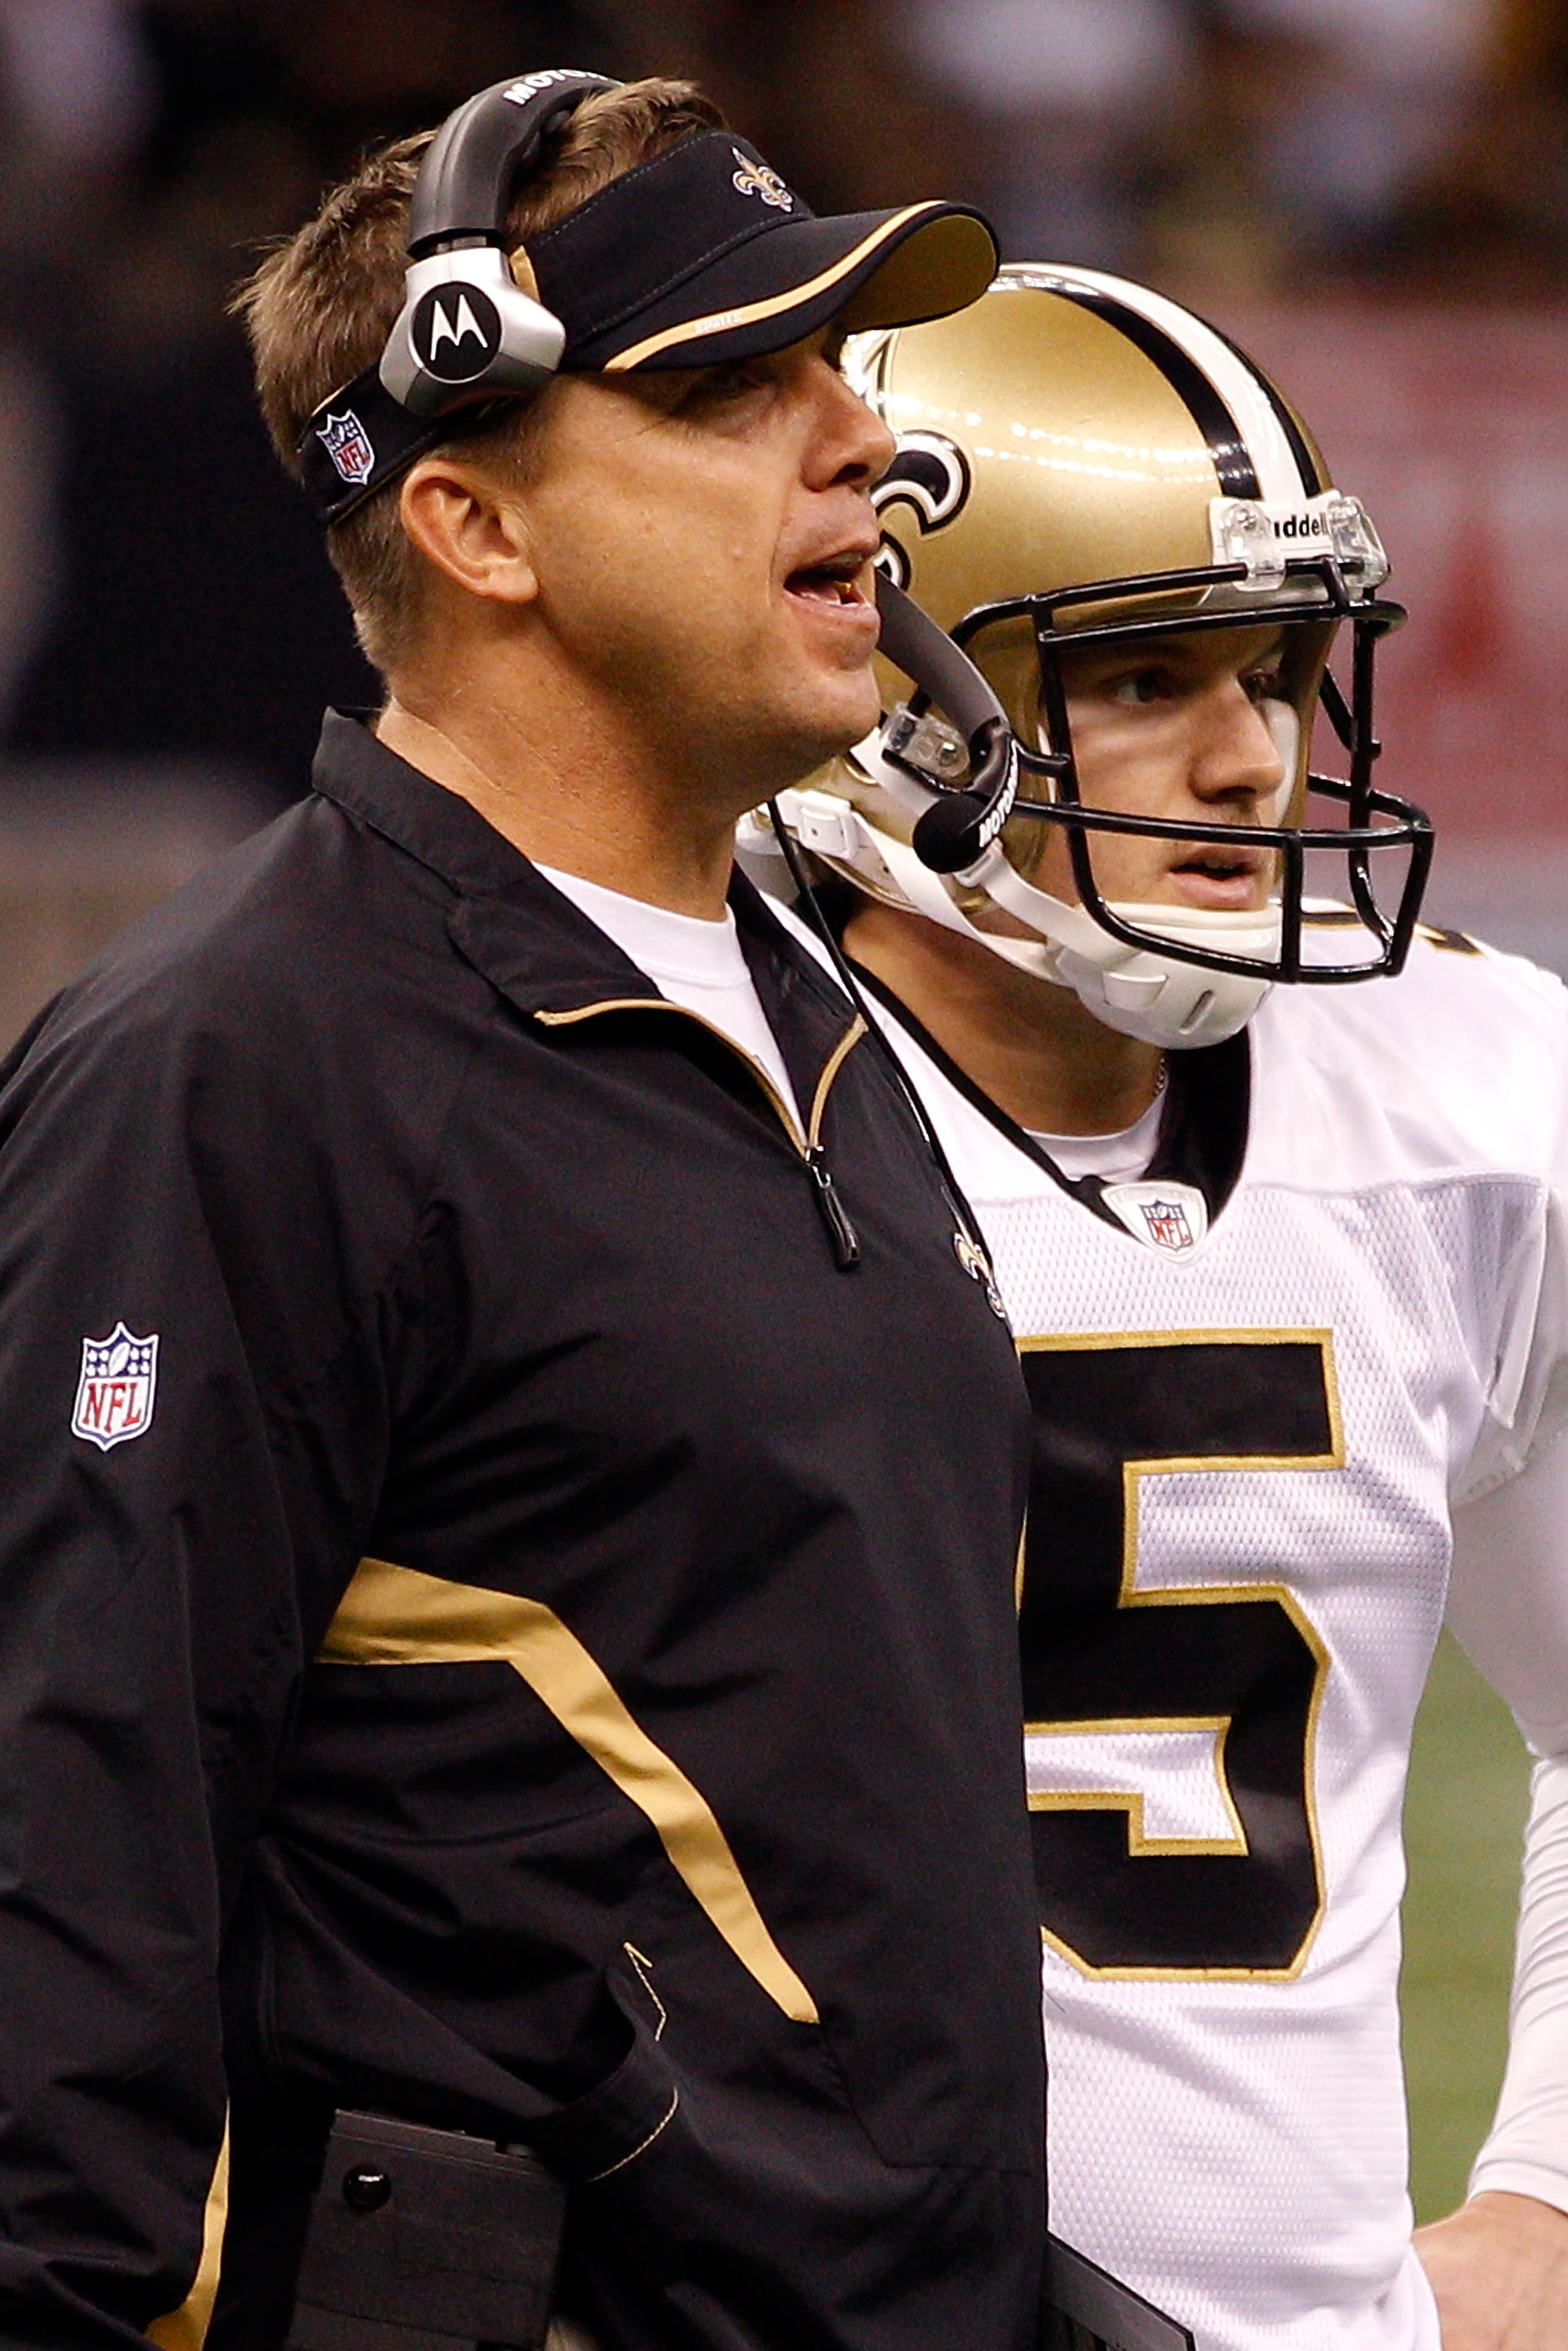 NEW ORLEANS - SEPTEMBER 26:  Head Coach Sean Payton talks with Garrett Hartley #5 of the New Orleans Saints before attempting a field goal in overtime against the Atlanta Falcons at the Louisiana Superdome on September 26, 2010 in New Orleans, Louisiana.